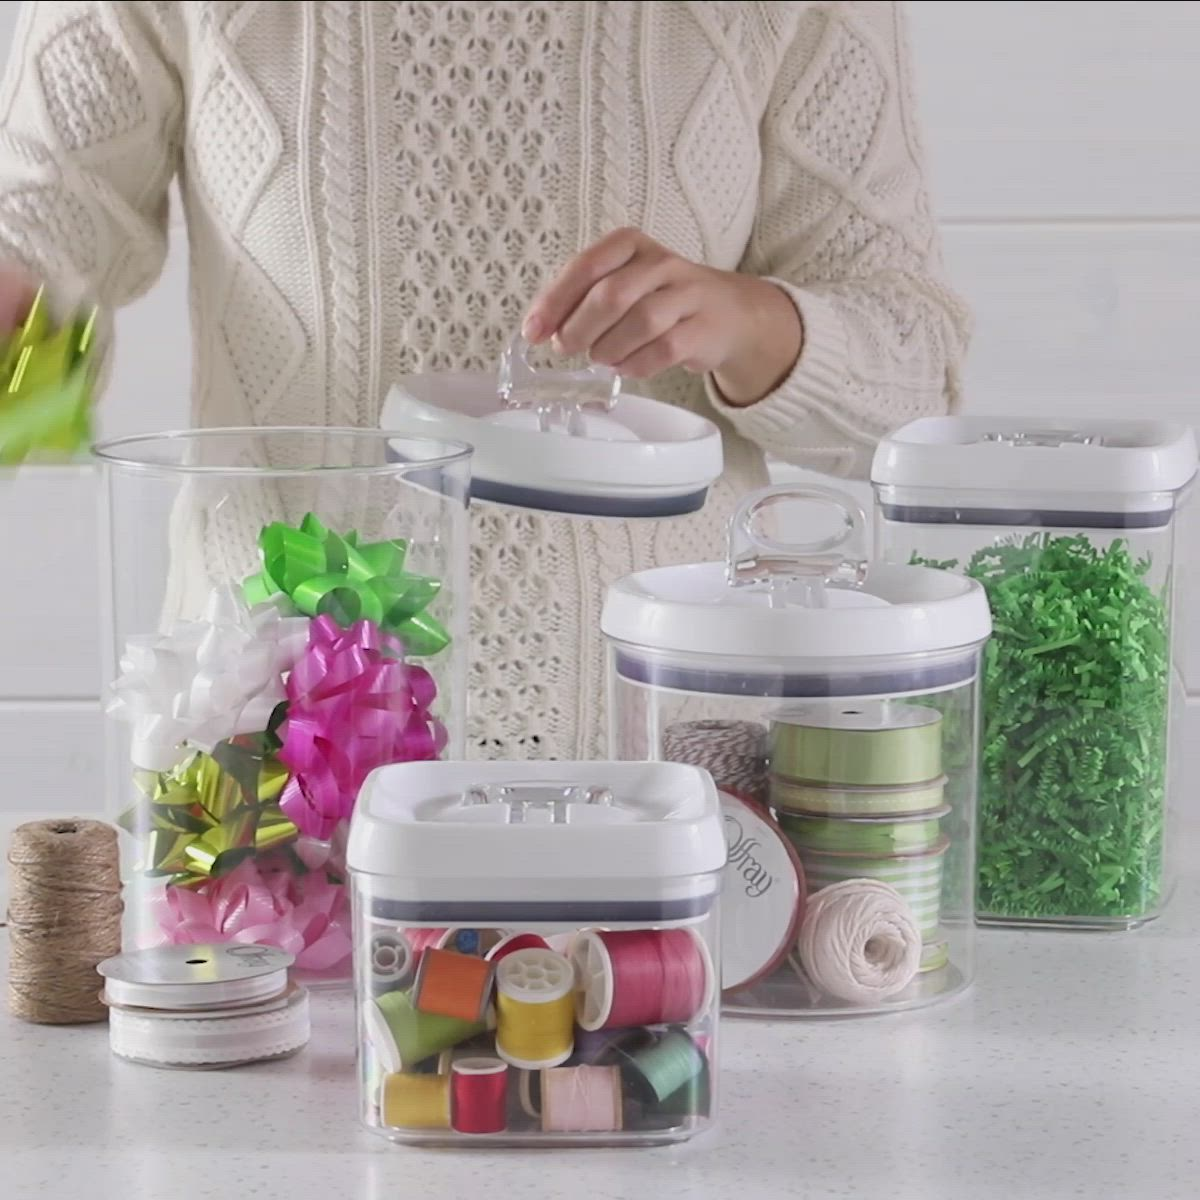 627650d800f620d0ad09714acb918a81.0000001 - Better Homes And Gardens Flip Tite Nesting Containers 6 Piece